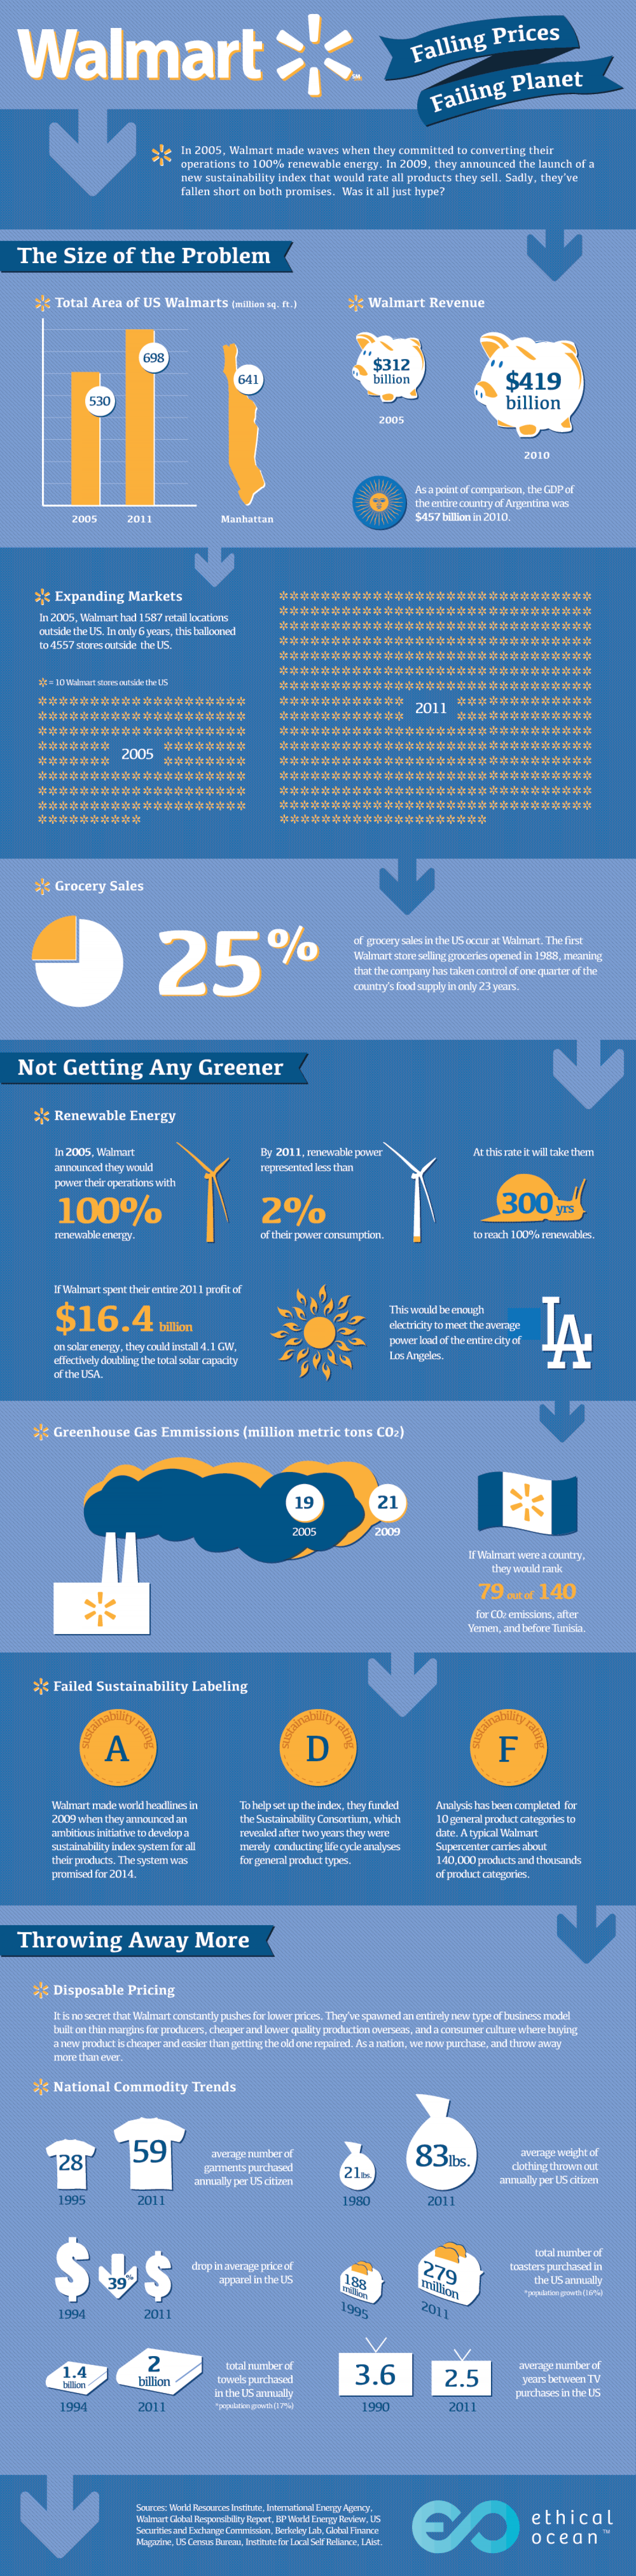 How Green is Walmart? Infographic